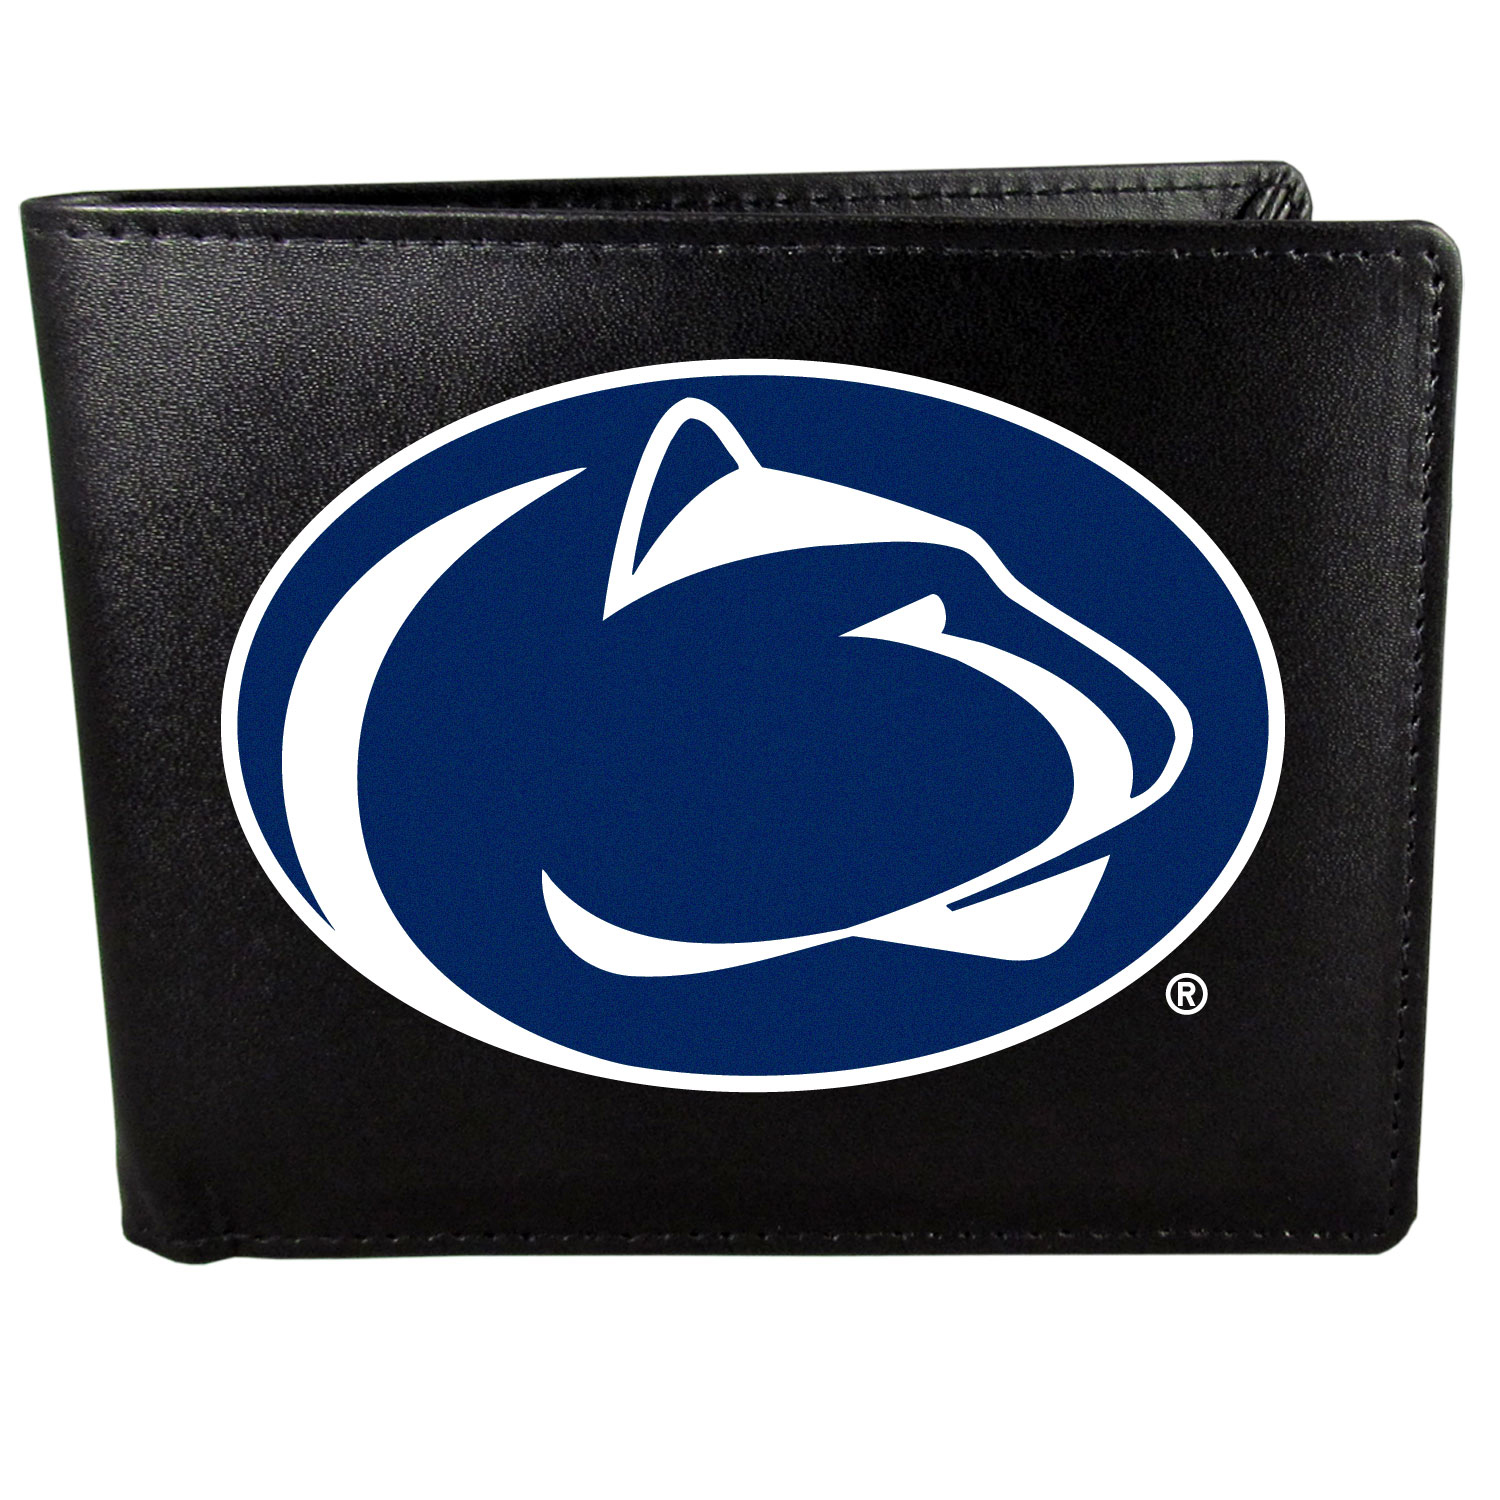 Penn St. Nittany Lions Leather Bi-fold Wallet, Large Logo - Our classic fine leather bi-fold wallet is meticulously crafted with genuine leather that will age beautifully so you will have a quality wallet for years to come. The wallet opens to a large, billfold pocket and numerous credit card slots and has a convenient windowed ID slot. The front of the wallet features an extra large Penn St. Nittany Lions printed logo.